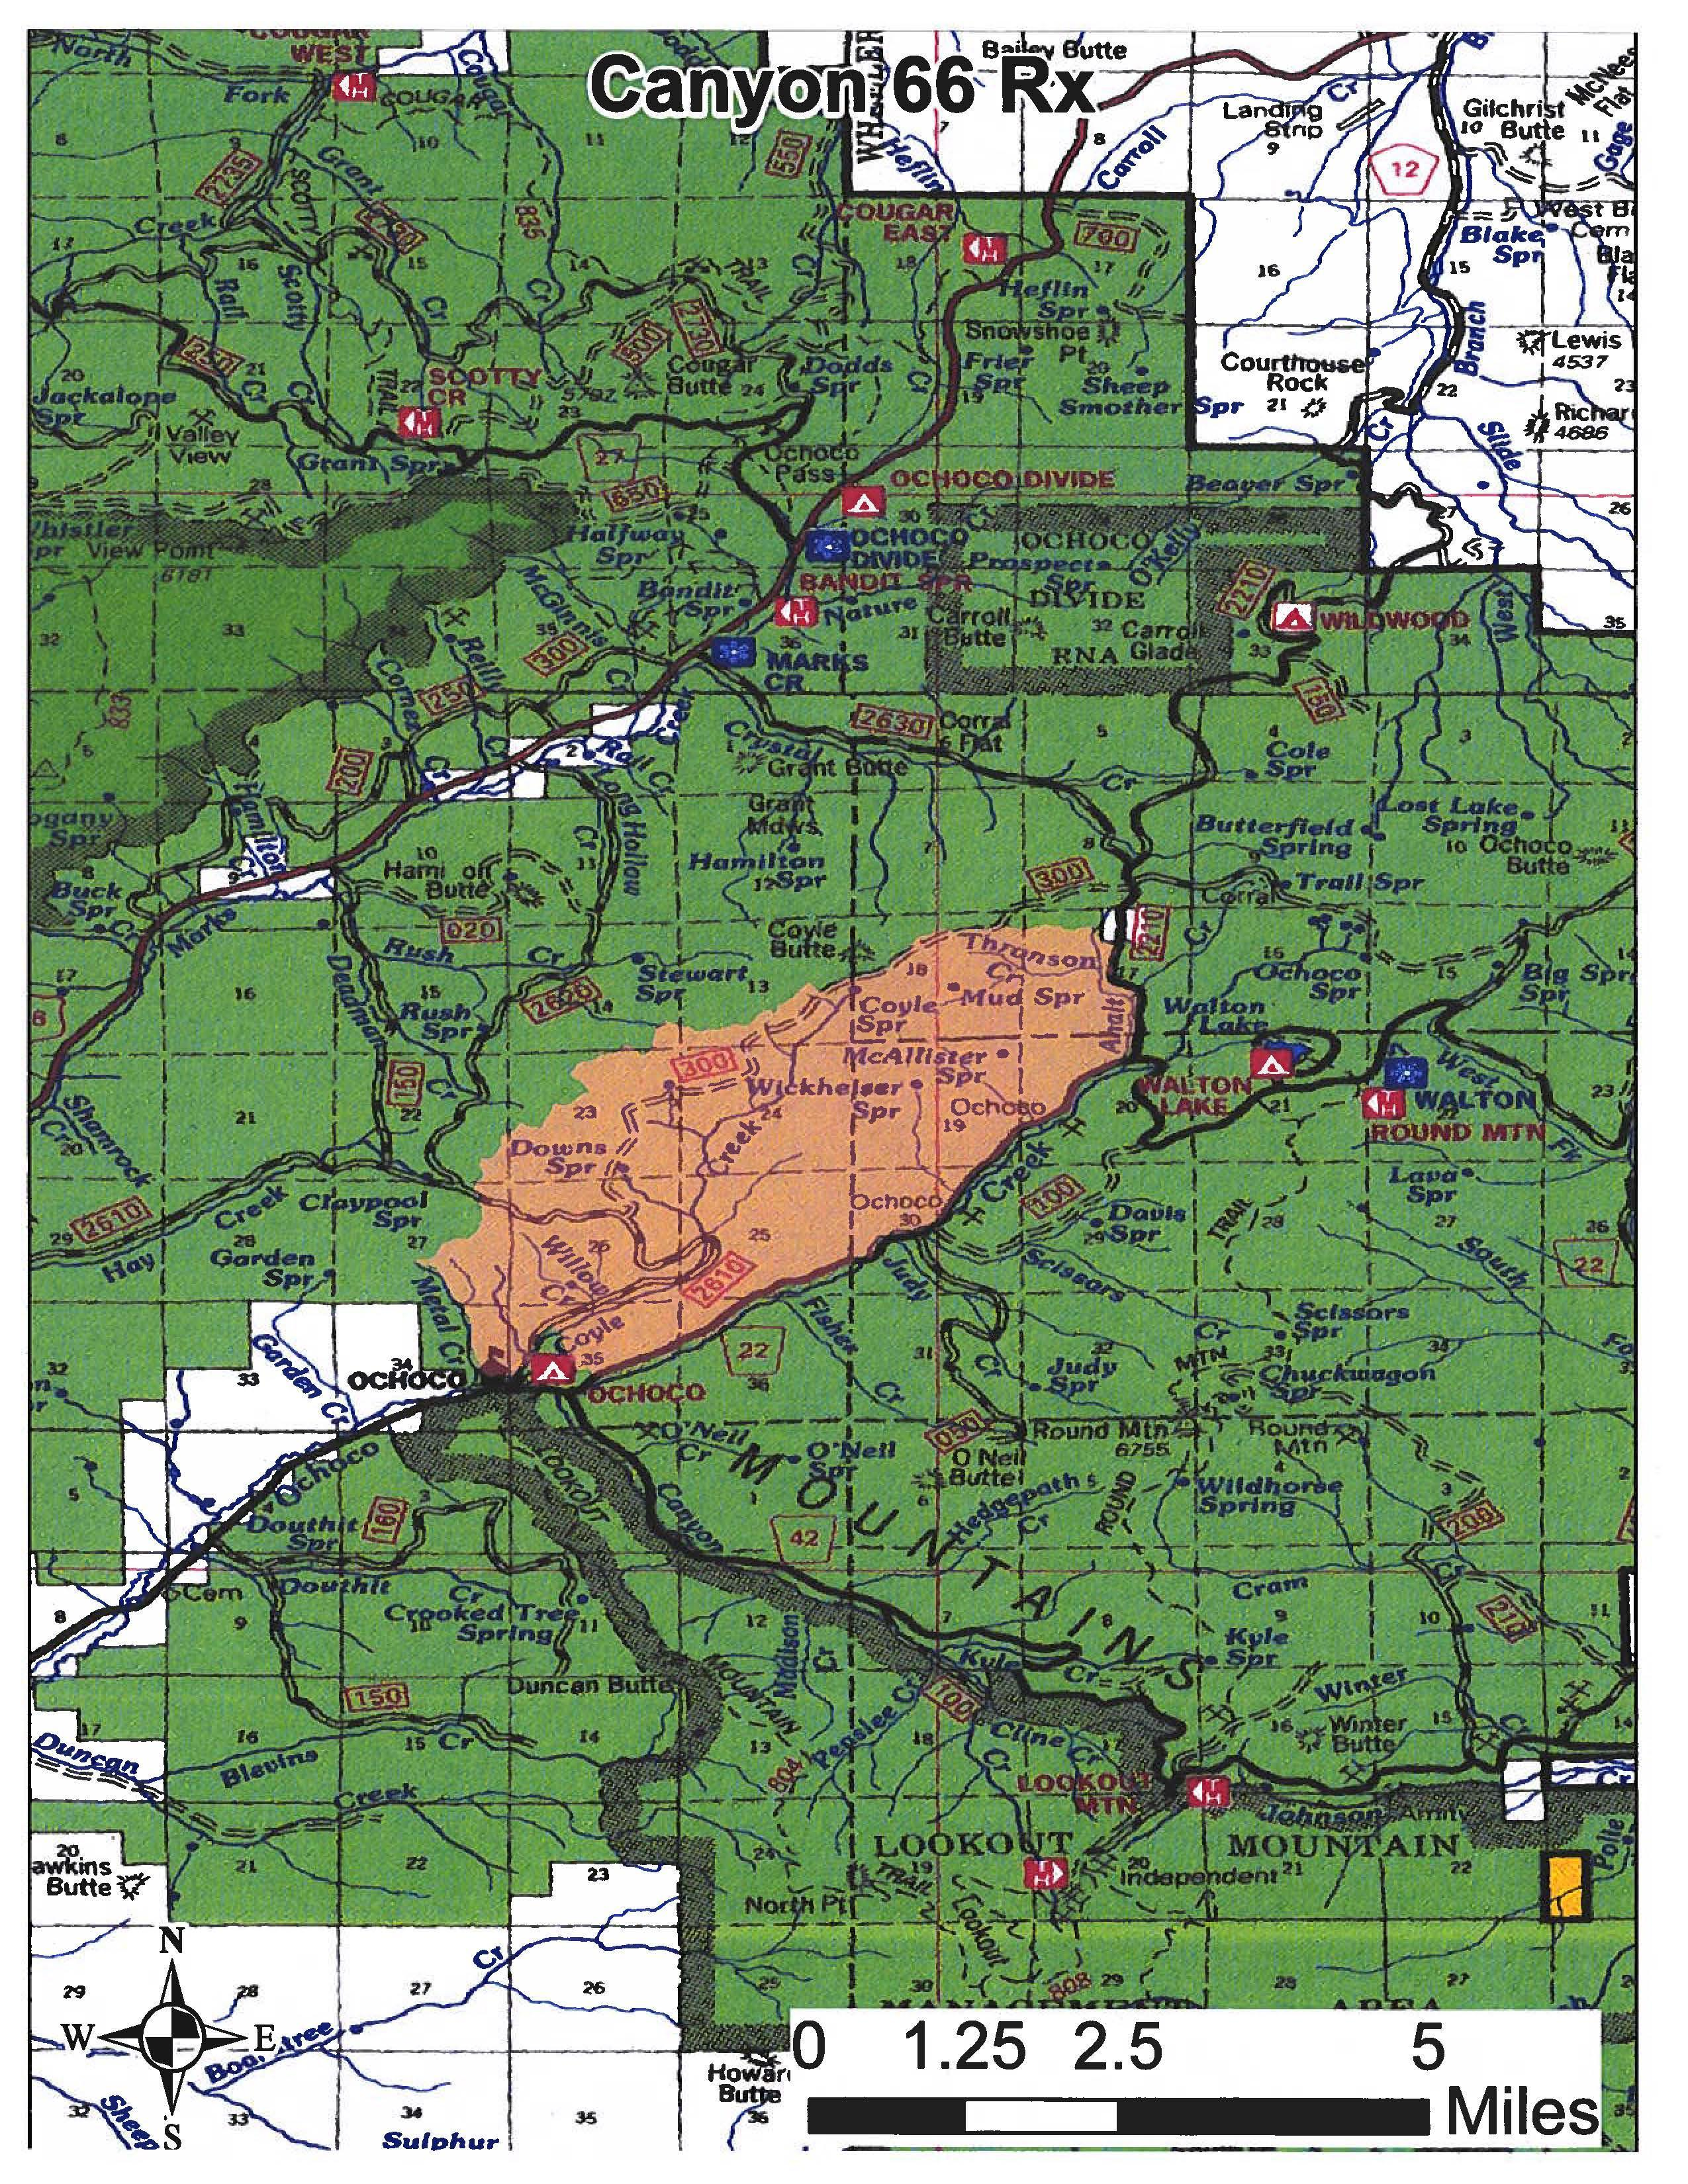 A map of the 5,072 acre Canyon 66 prescribed burn unit